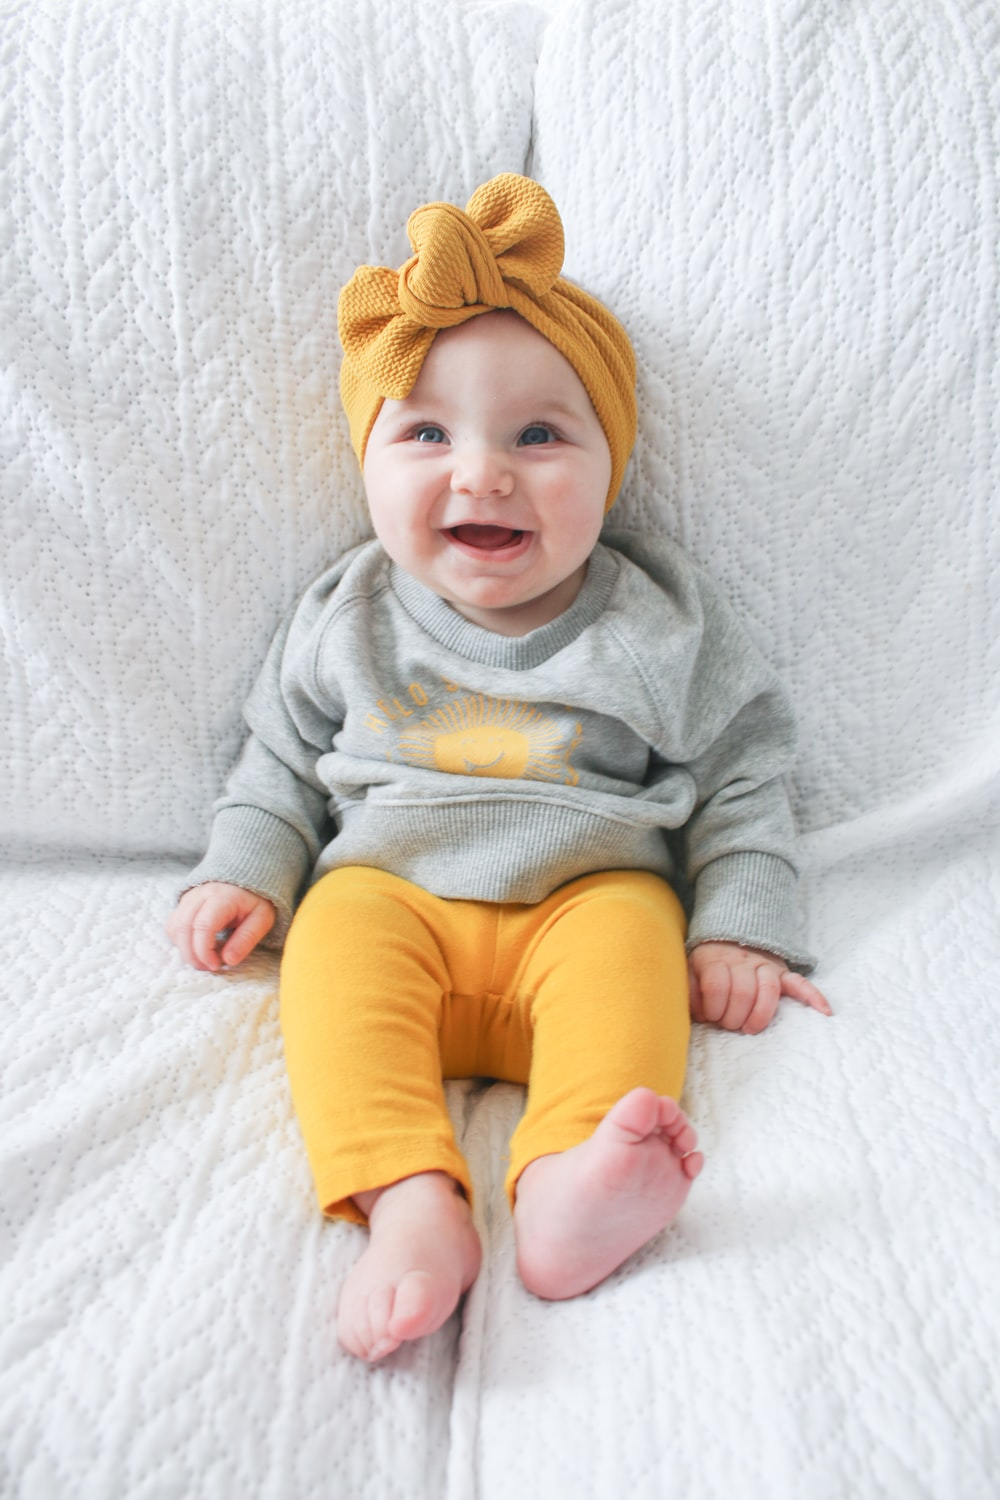 Baby Fashion Trends 2019 To Look Forward To